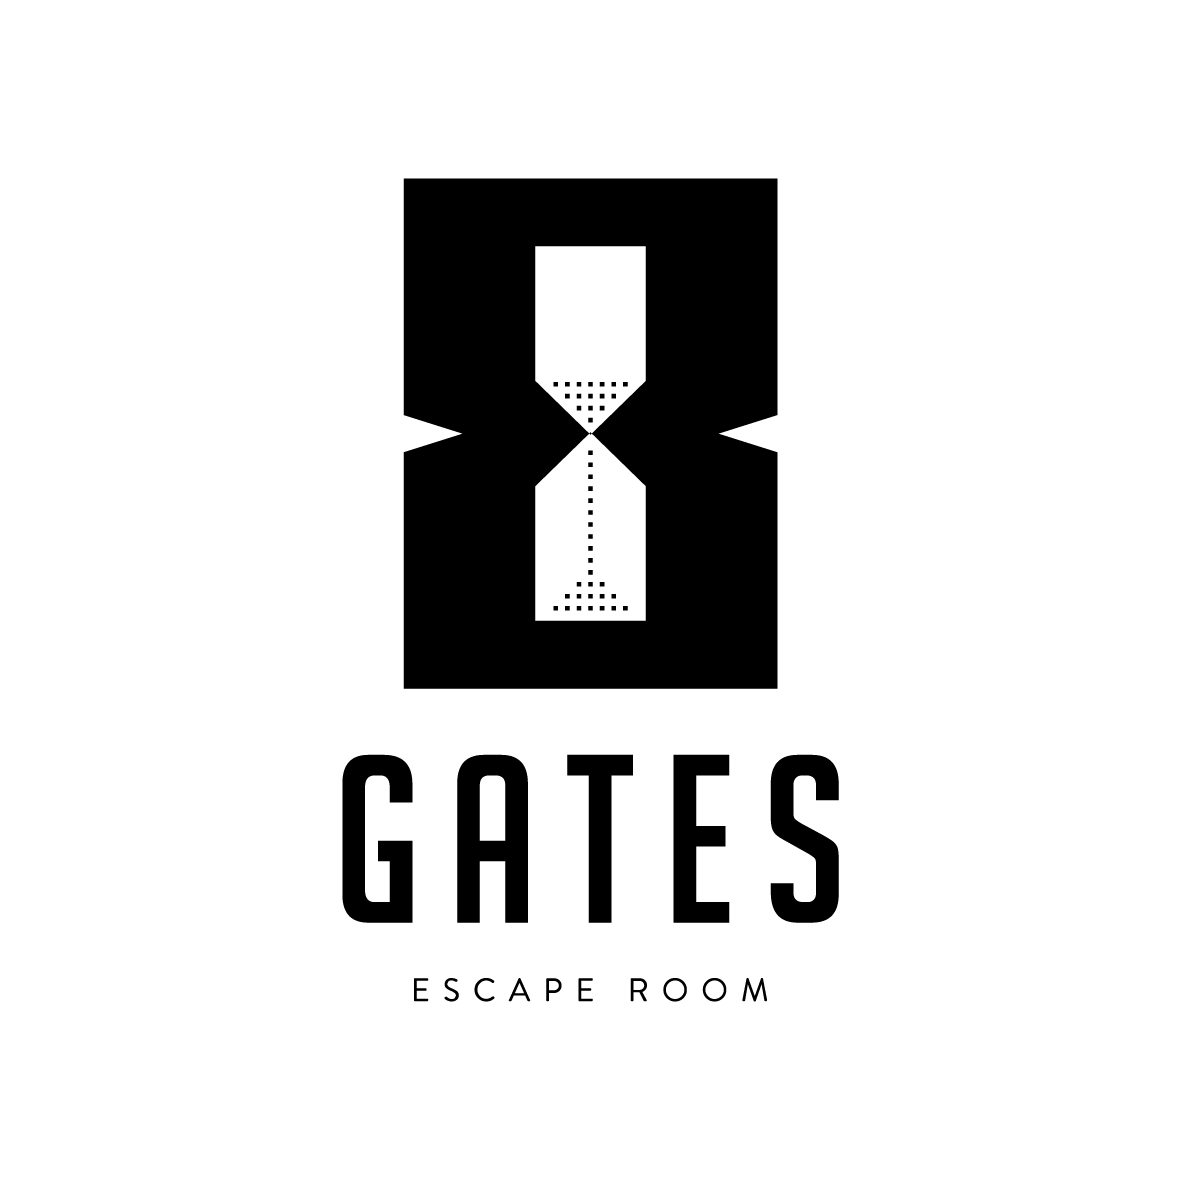 8 Gates Escape Room